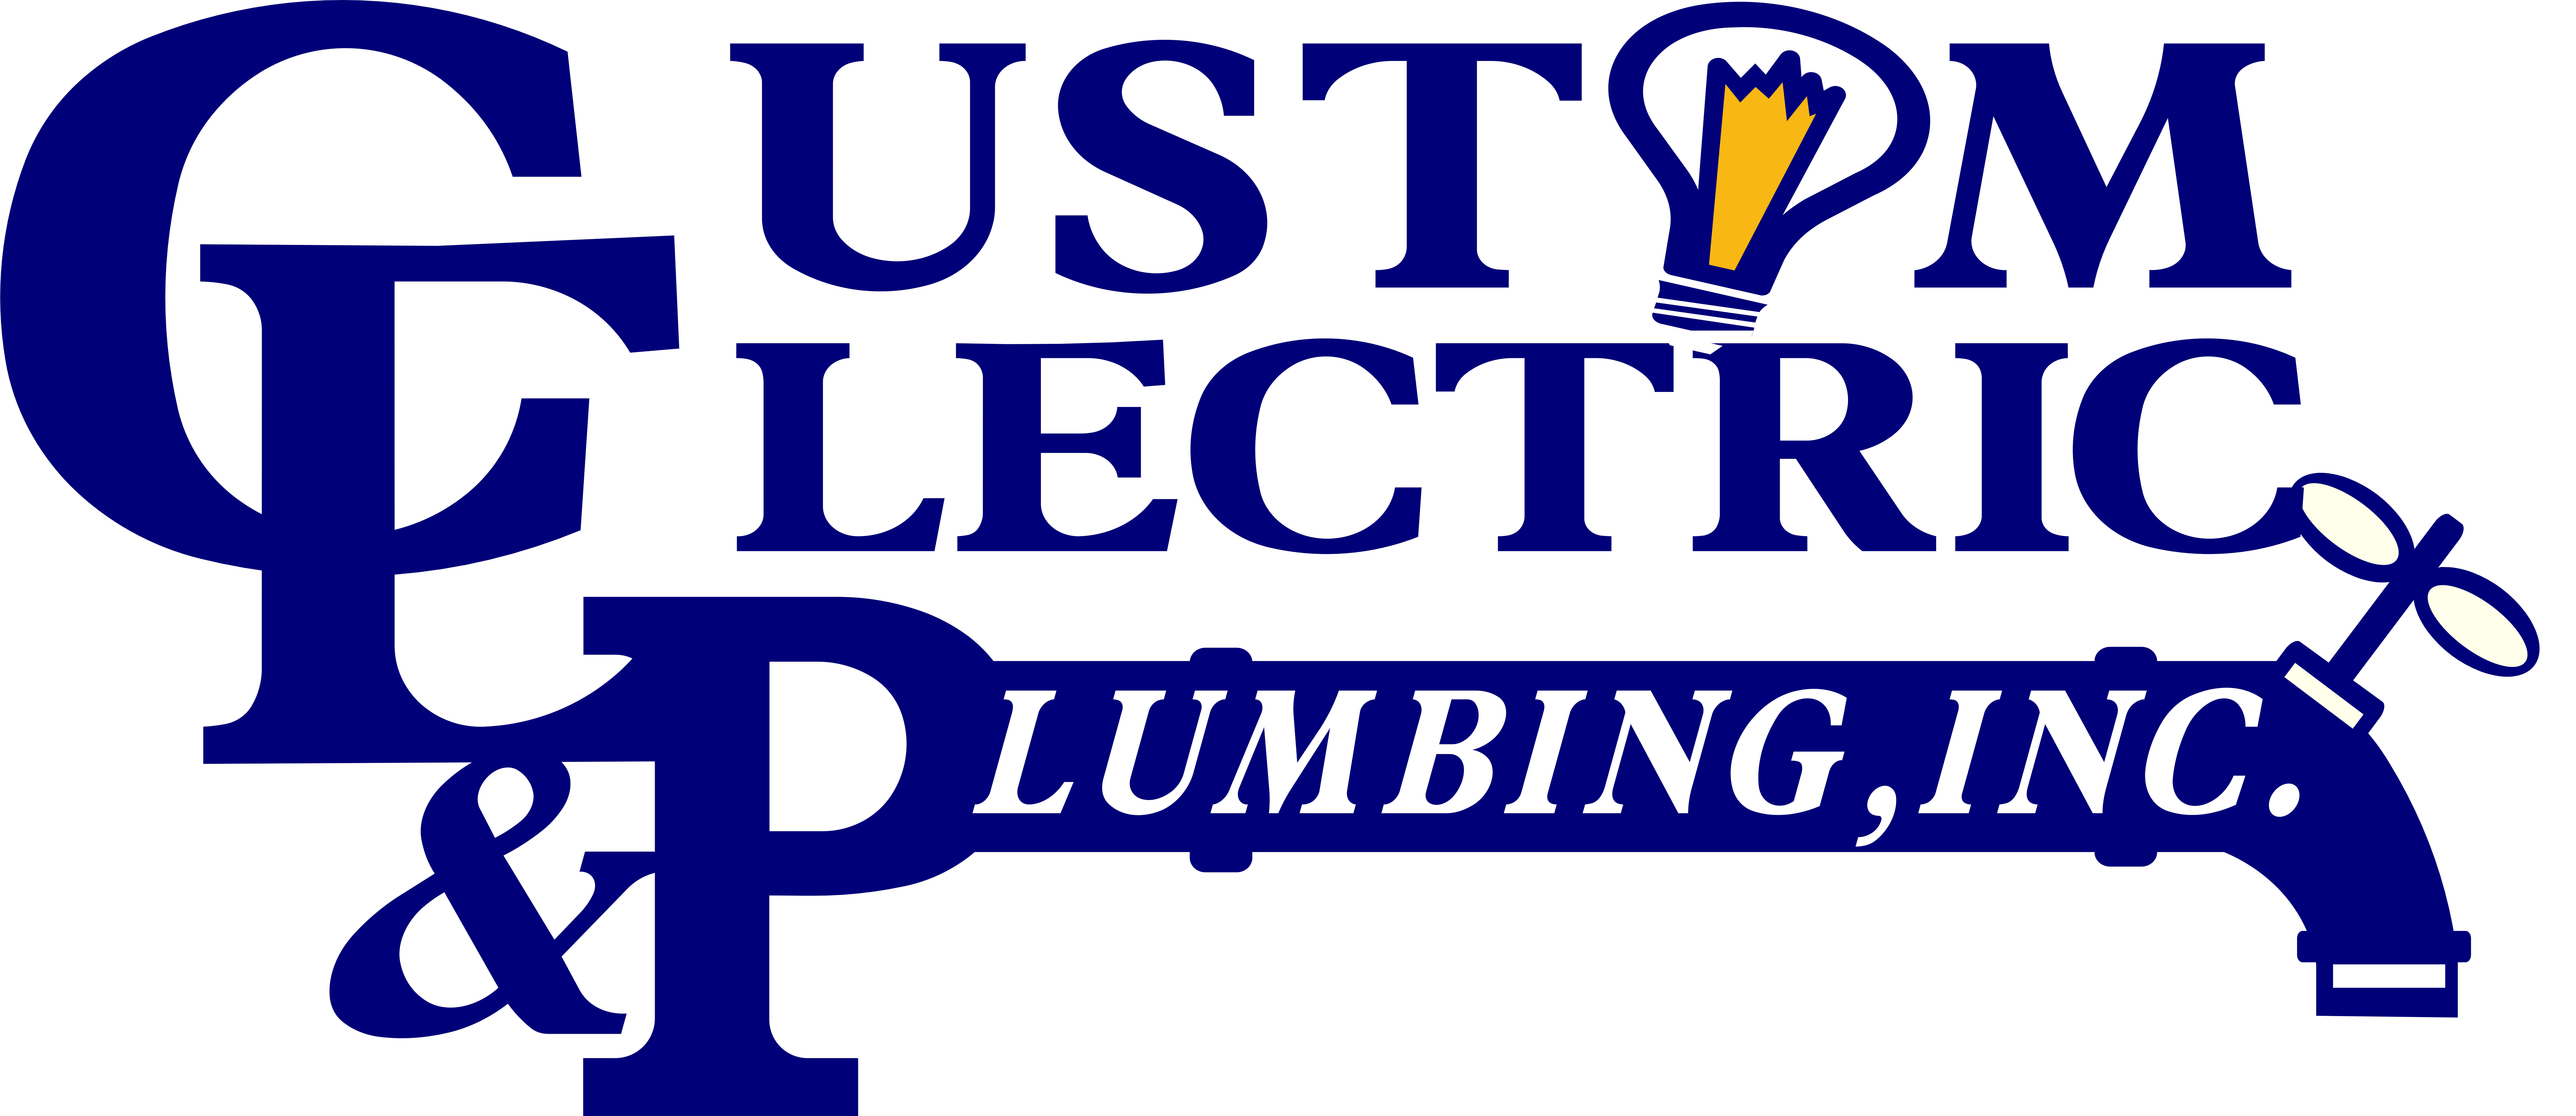 Custom Electric & Plumbing, Inc.